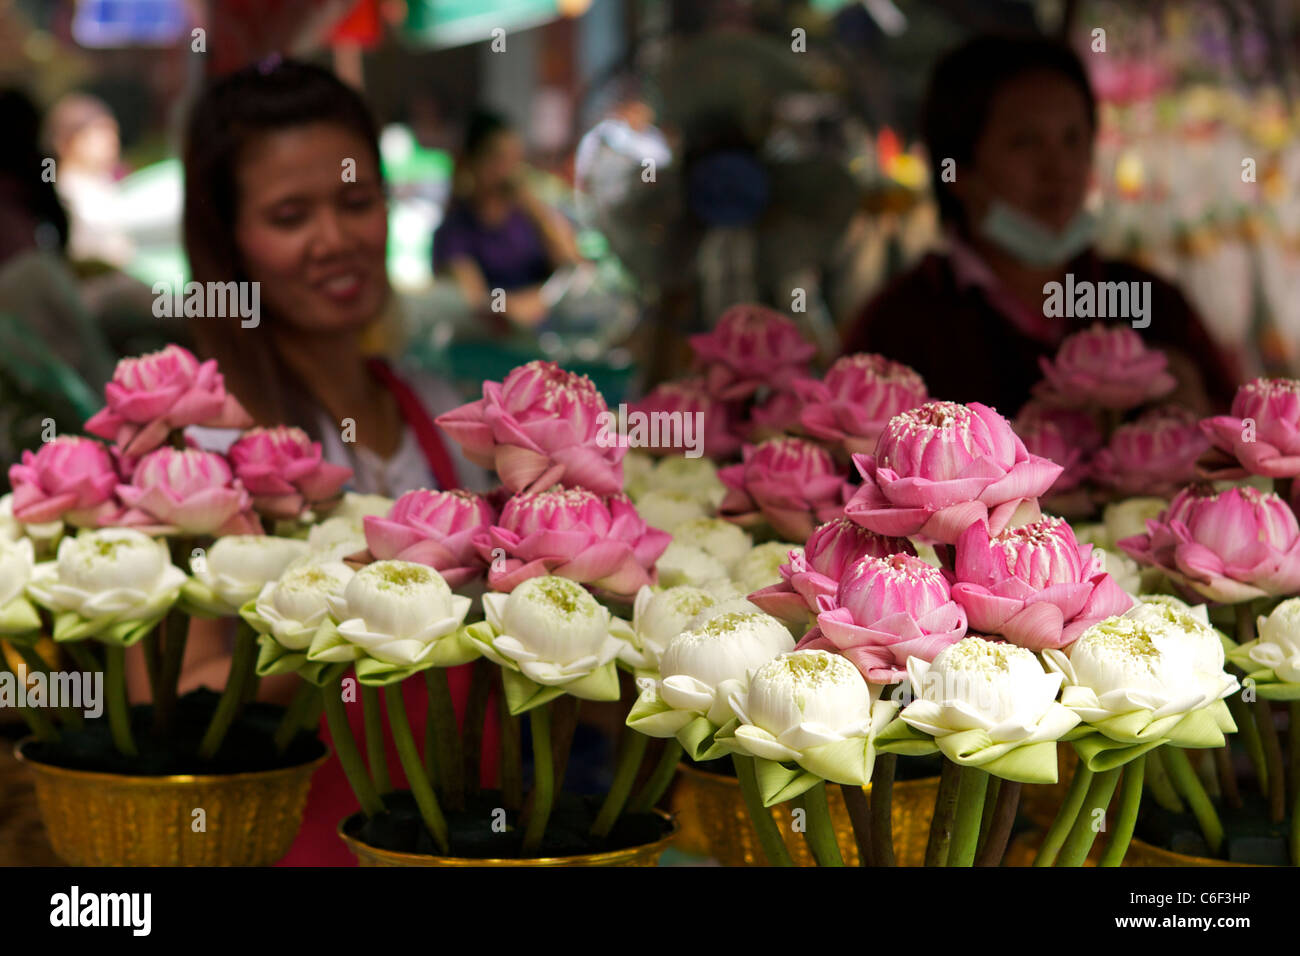 Bowls Of Hand Folded Lotus Flowers For Sale On A Street Stall In The